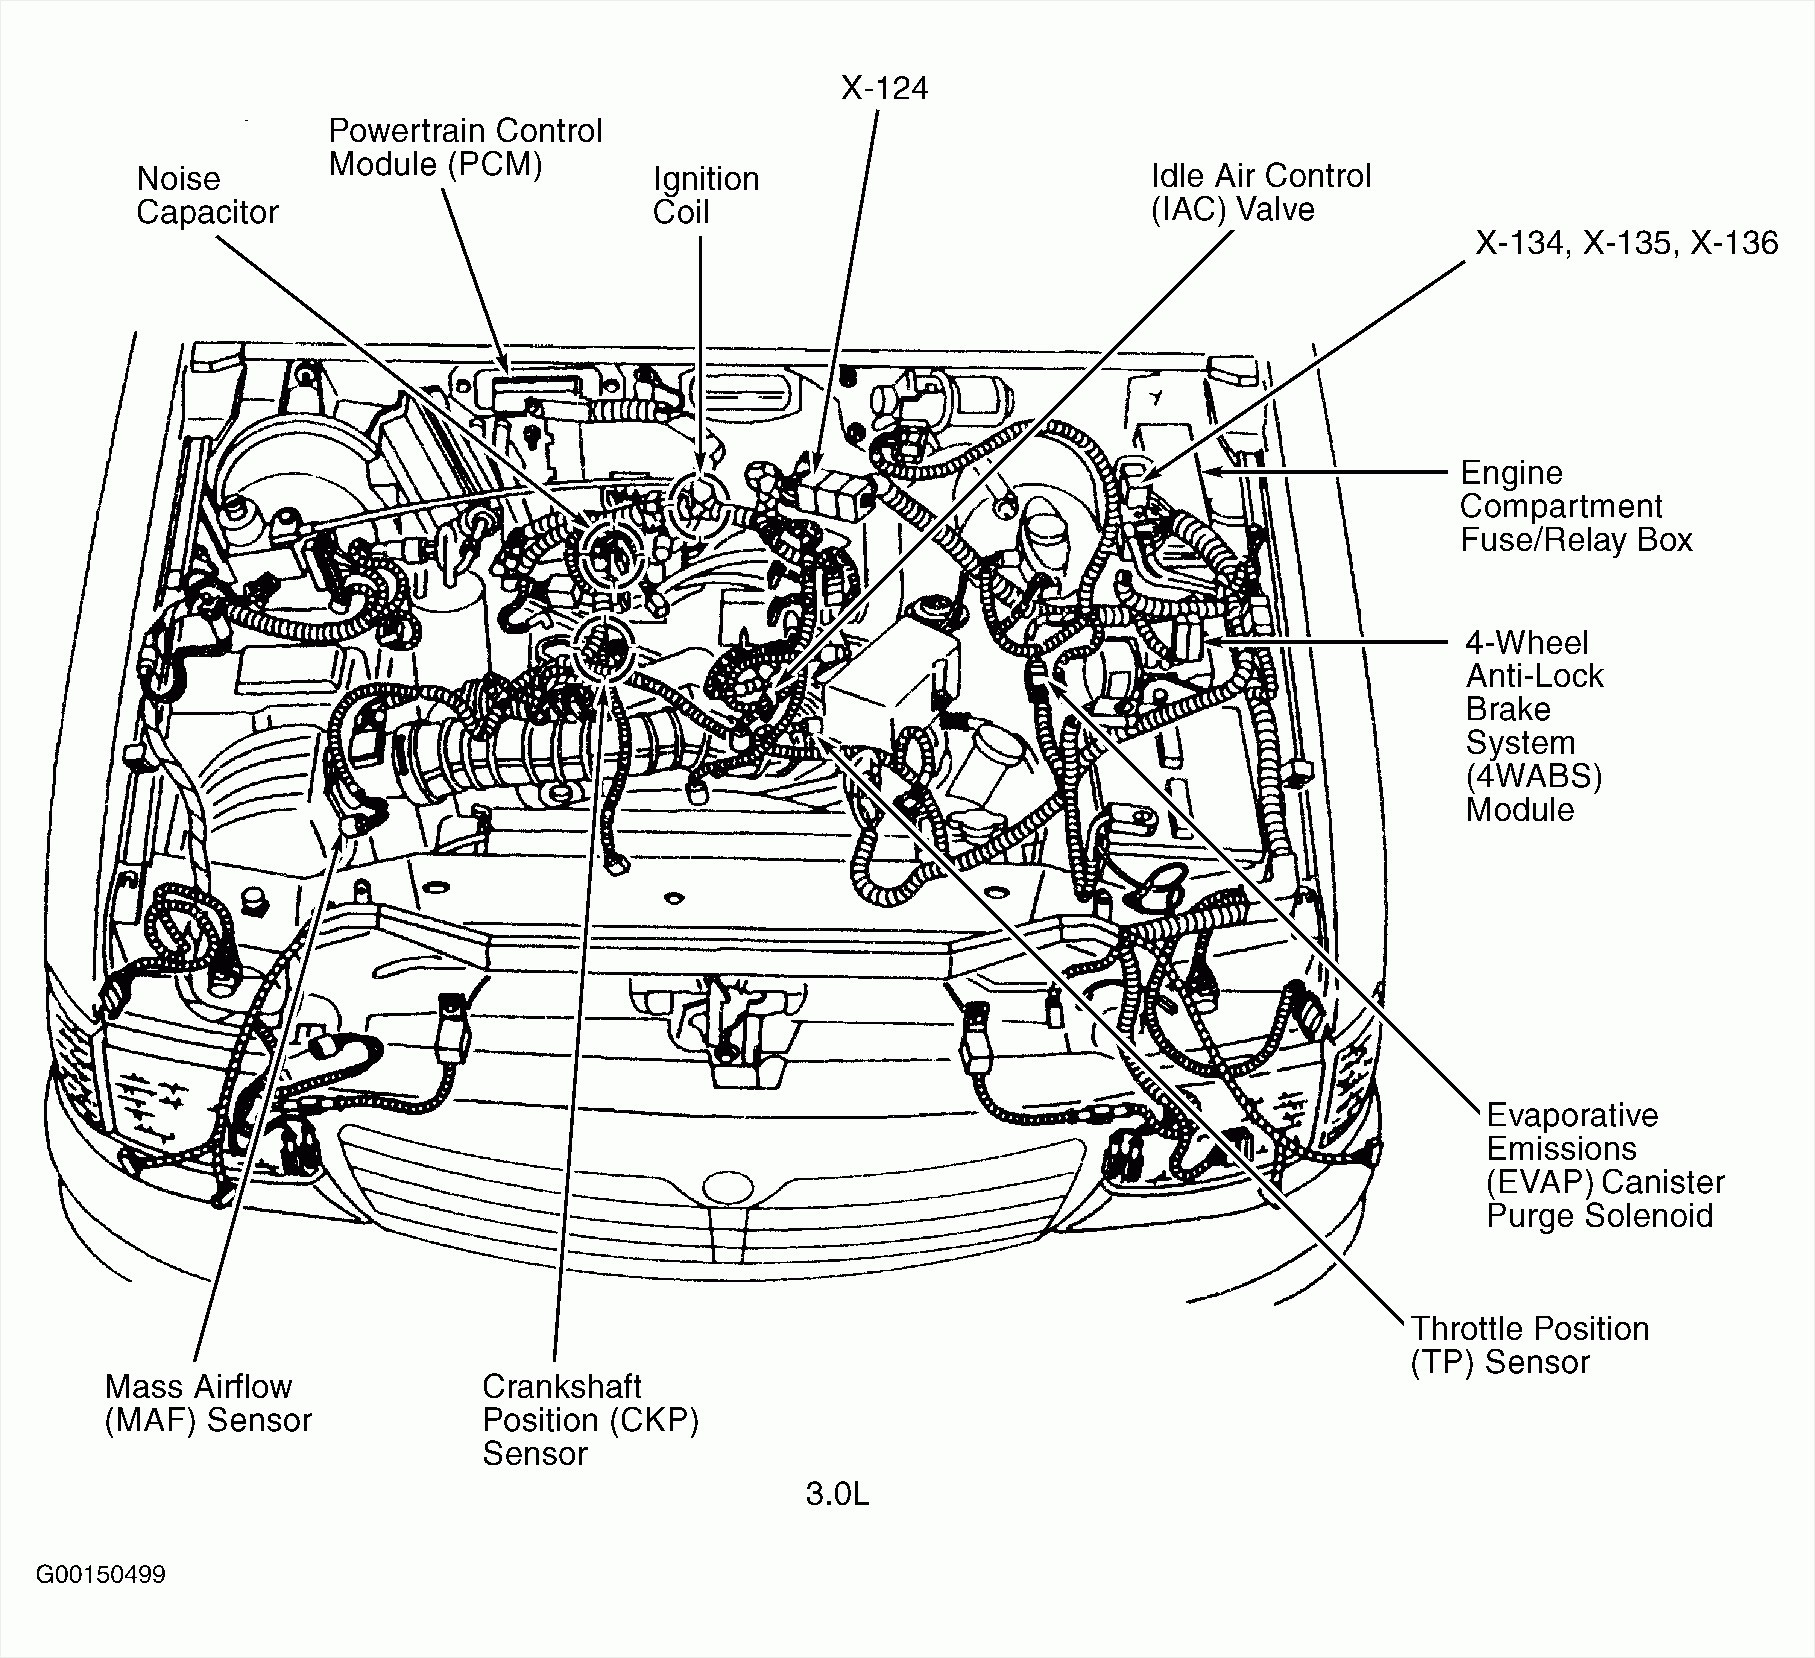 1999 Ford Ranger 3 0 Fuse Diagram Car Wiring Diagrams Explained 2008 V6 Engine Schematic U2022 Rh Arcomics Co